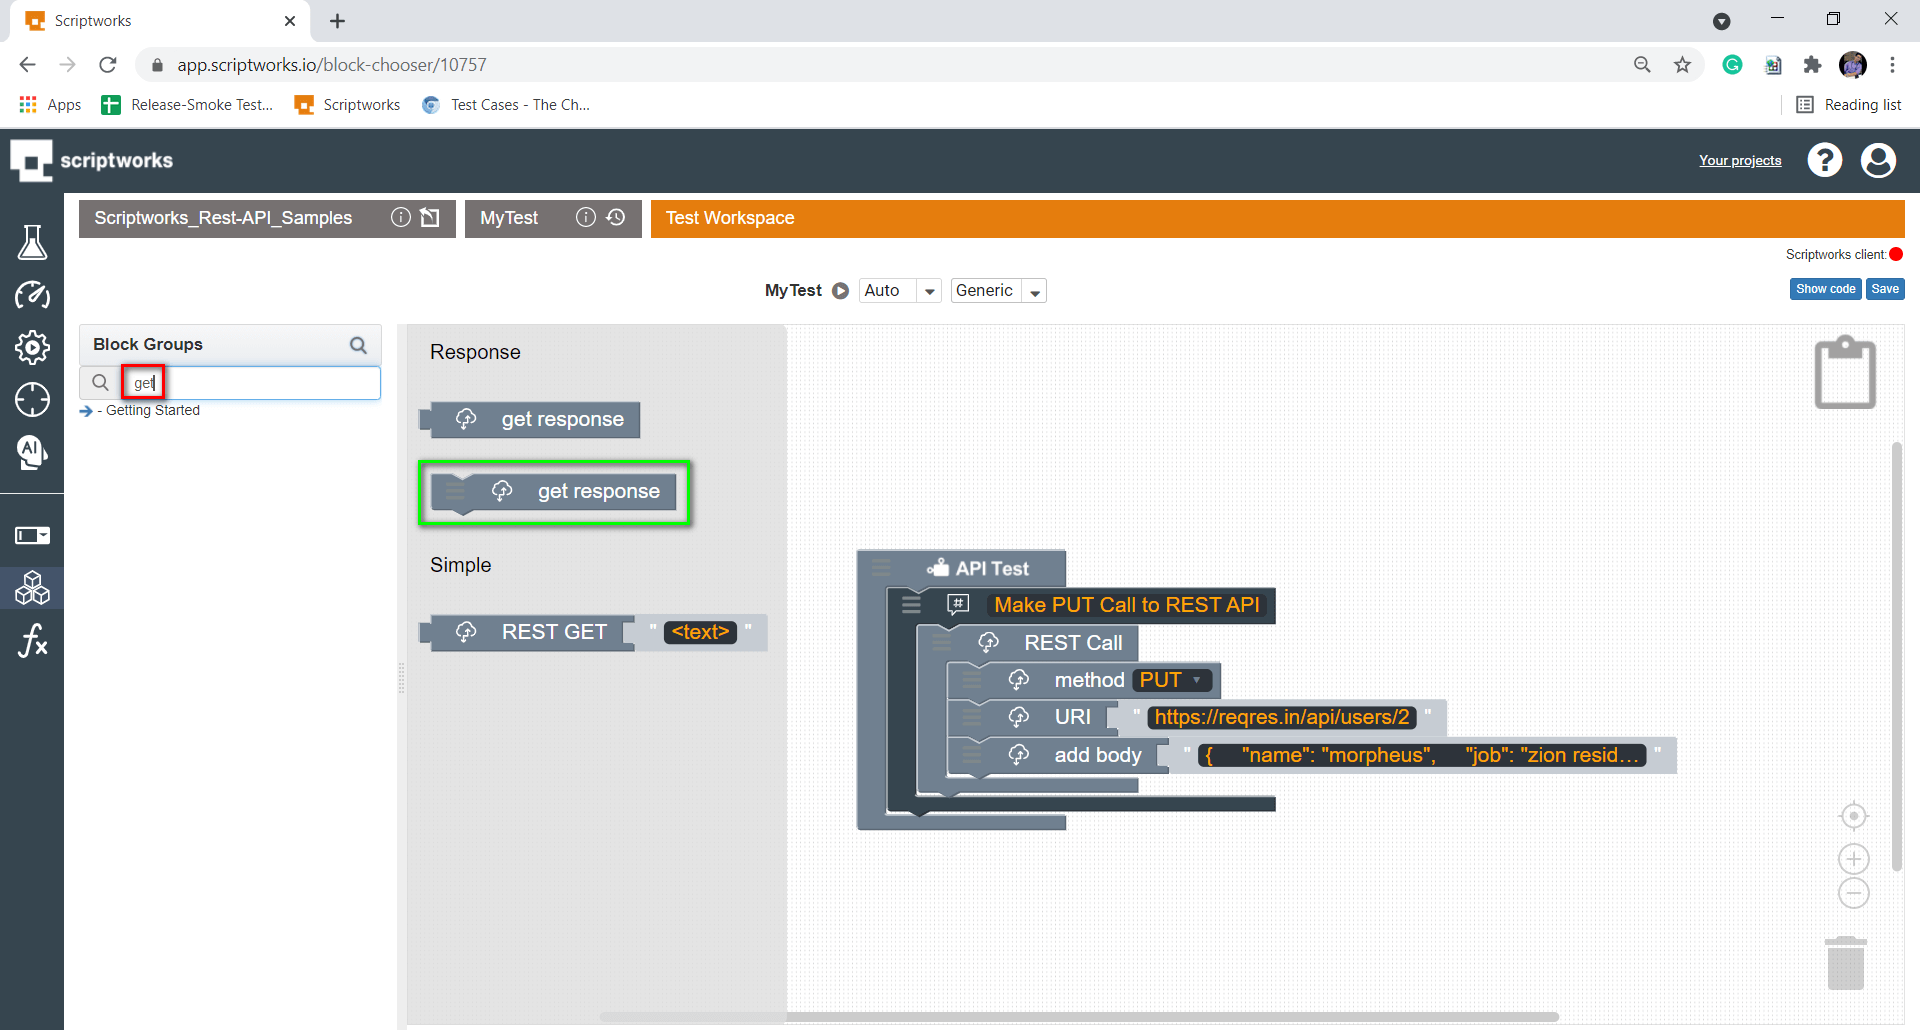 search get response from search box present in left hand side of the panel